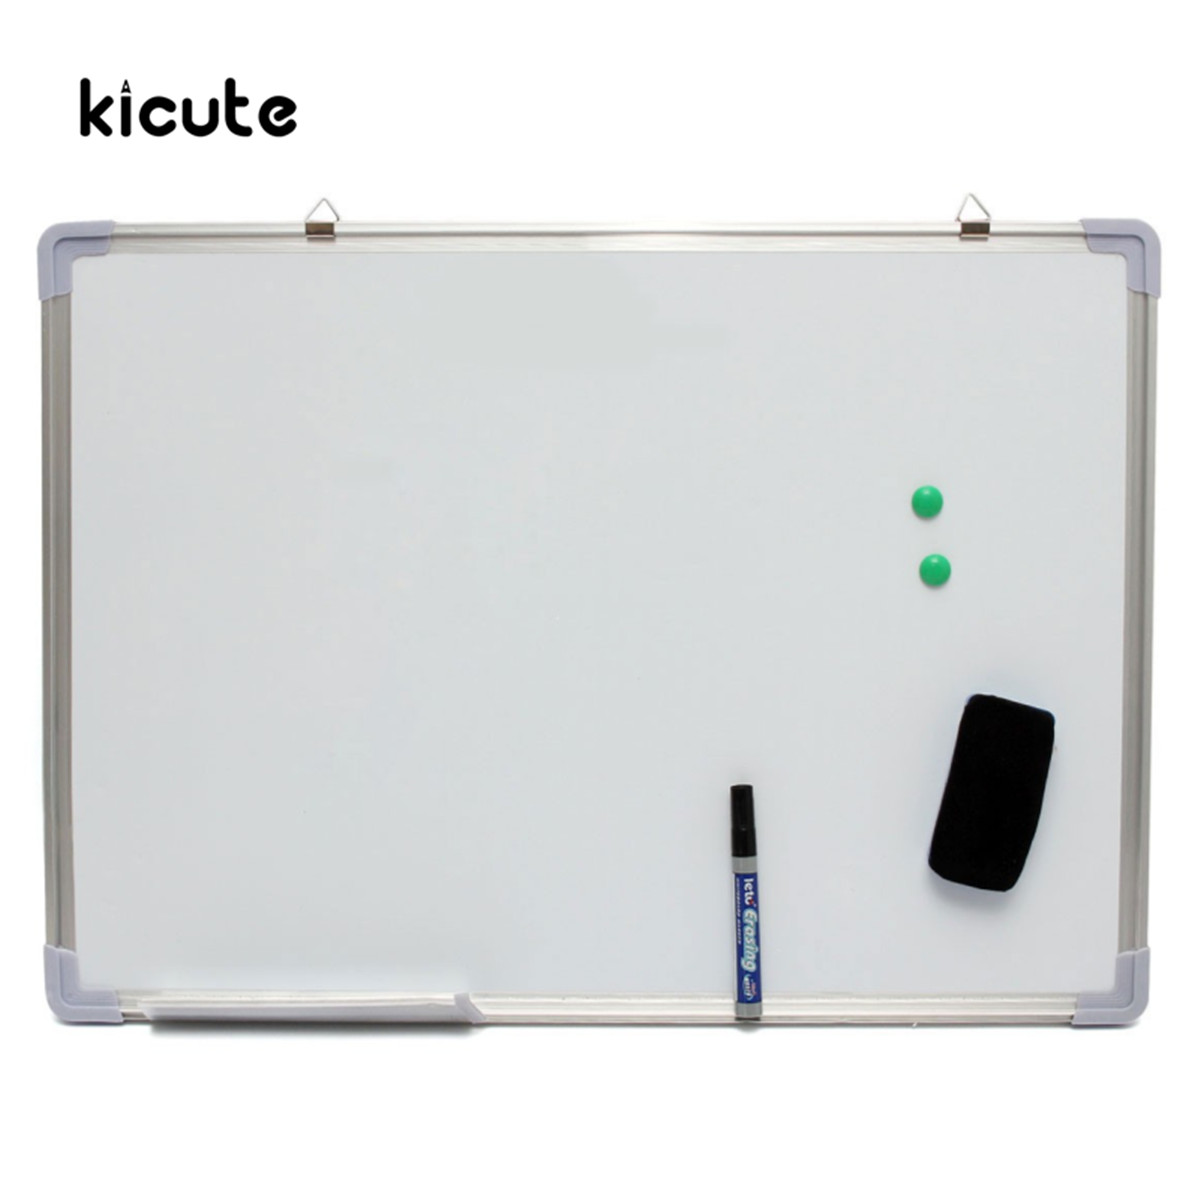 700x500mm Magnetic Dry Wipe White Board Writing Board With Pen Erase Magnet Buttons Single Side Whiteboard For Classroom Office